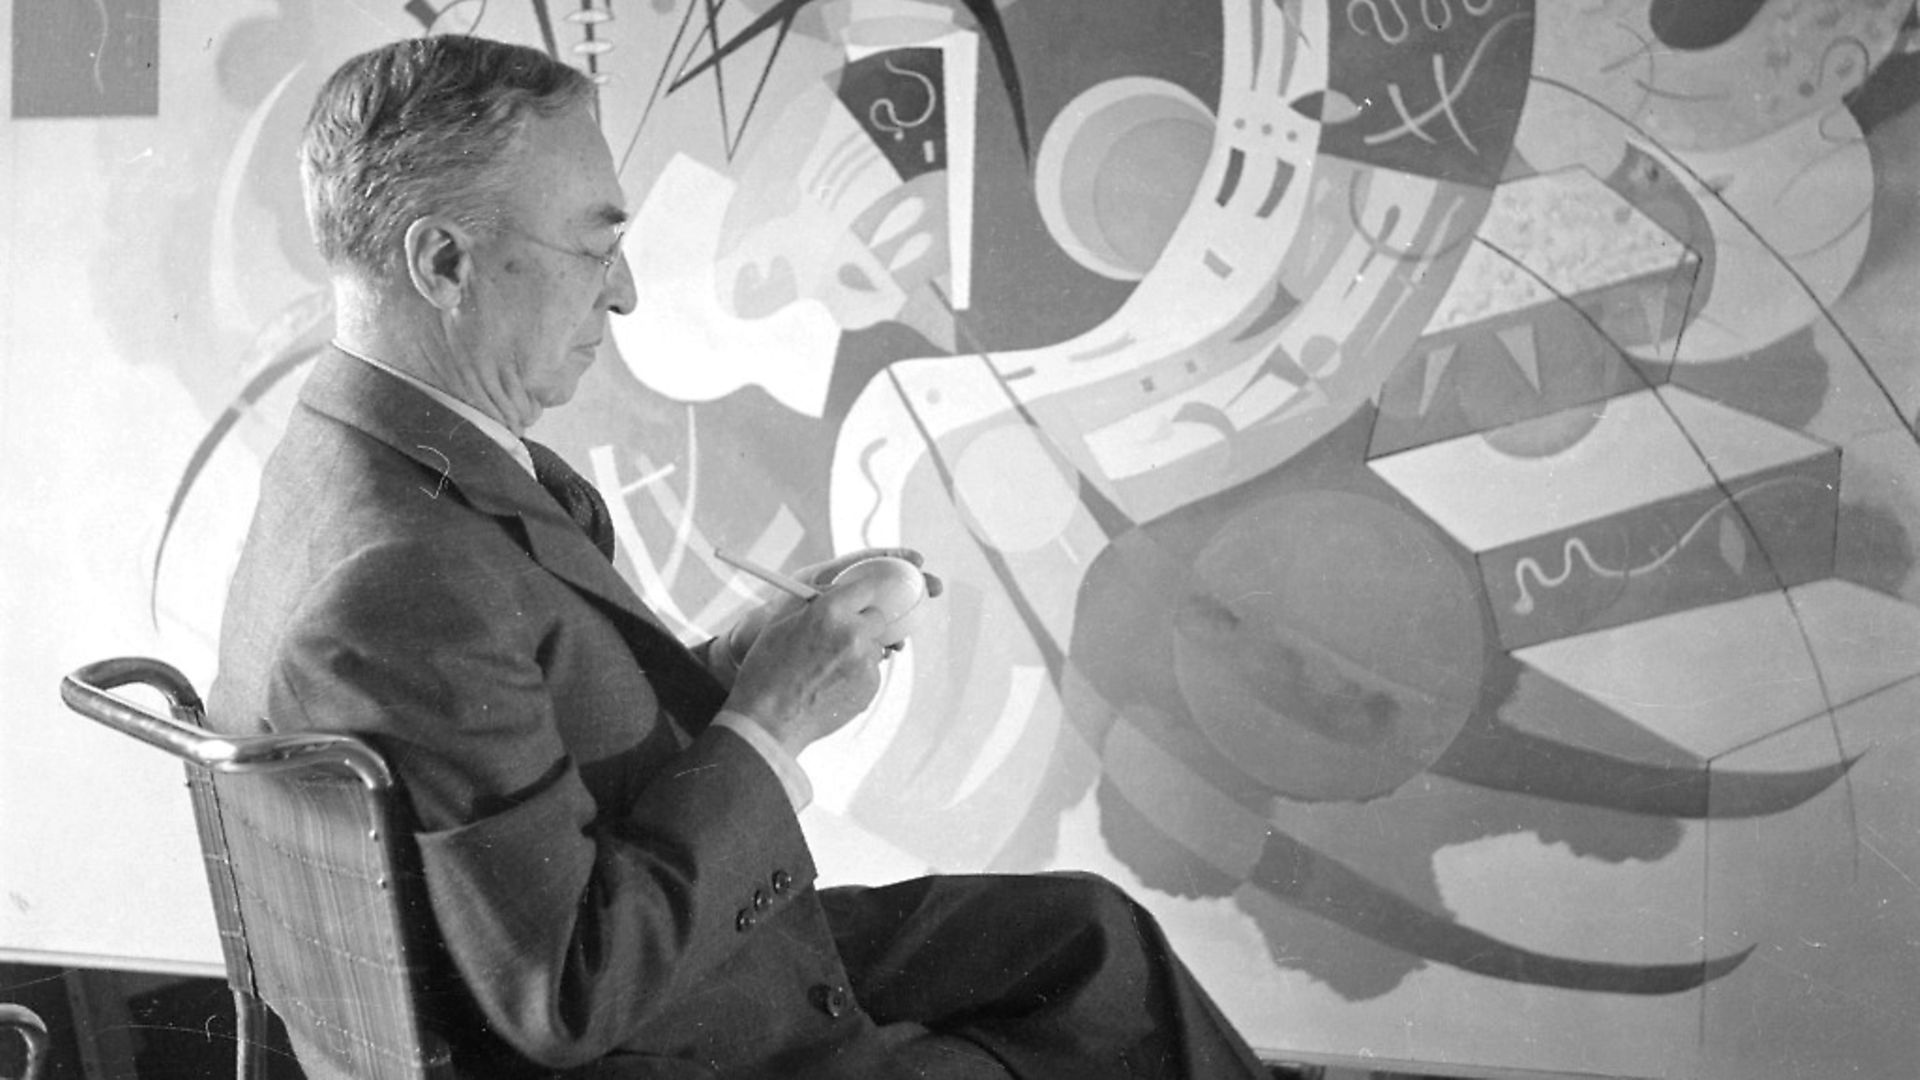 Russian painter Wassily Kandinsky pictured in France, 1936. Photo: by Lipnitzki/Roger Viollet/Getty Images - Credit: Roger Viollet/Getty Images